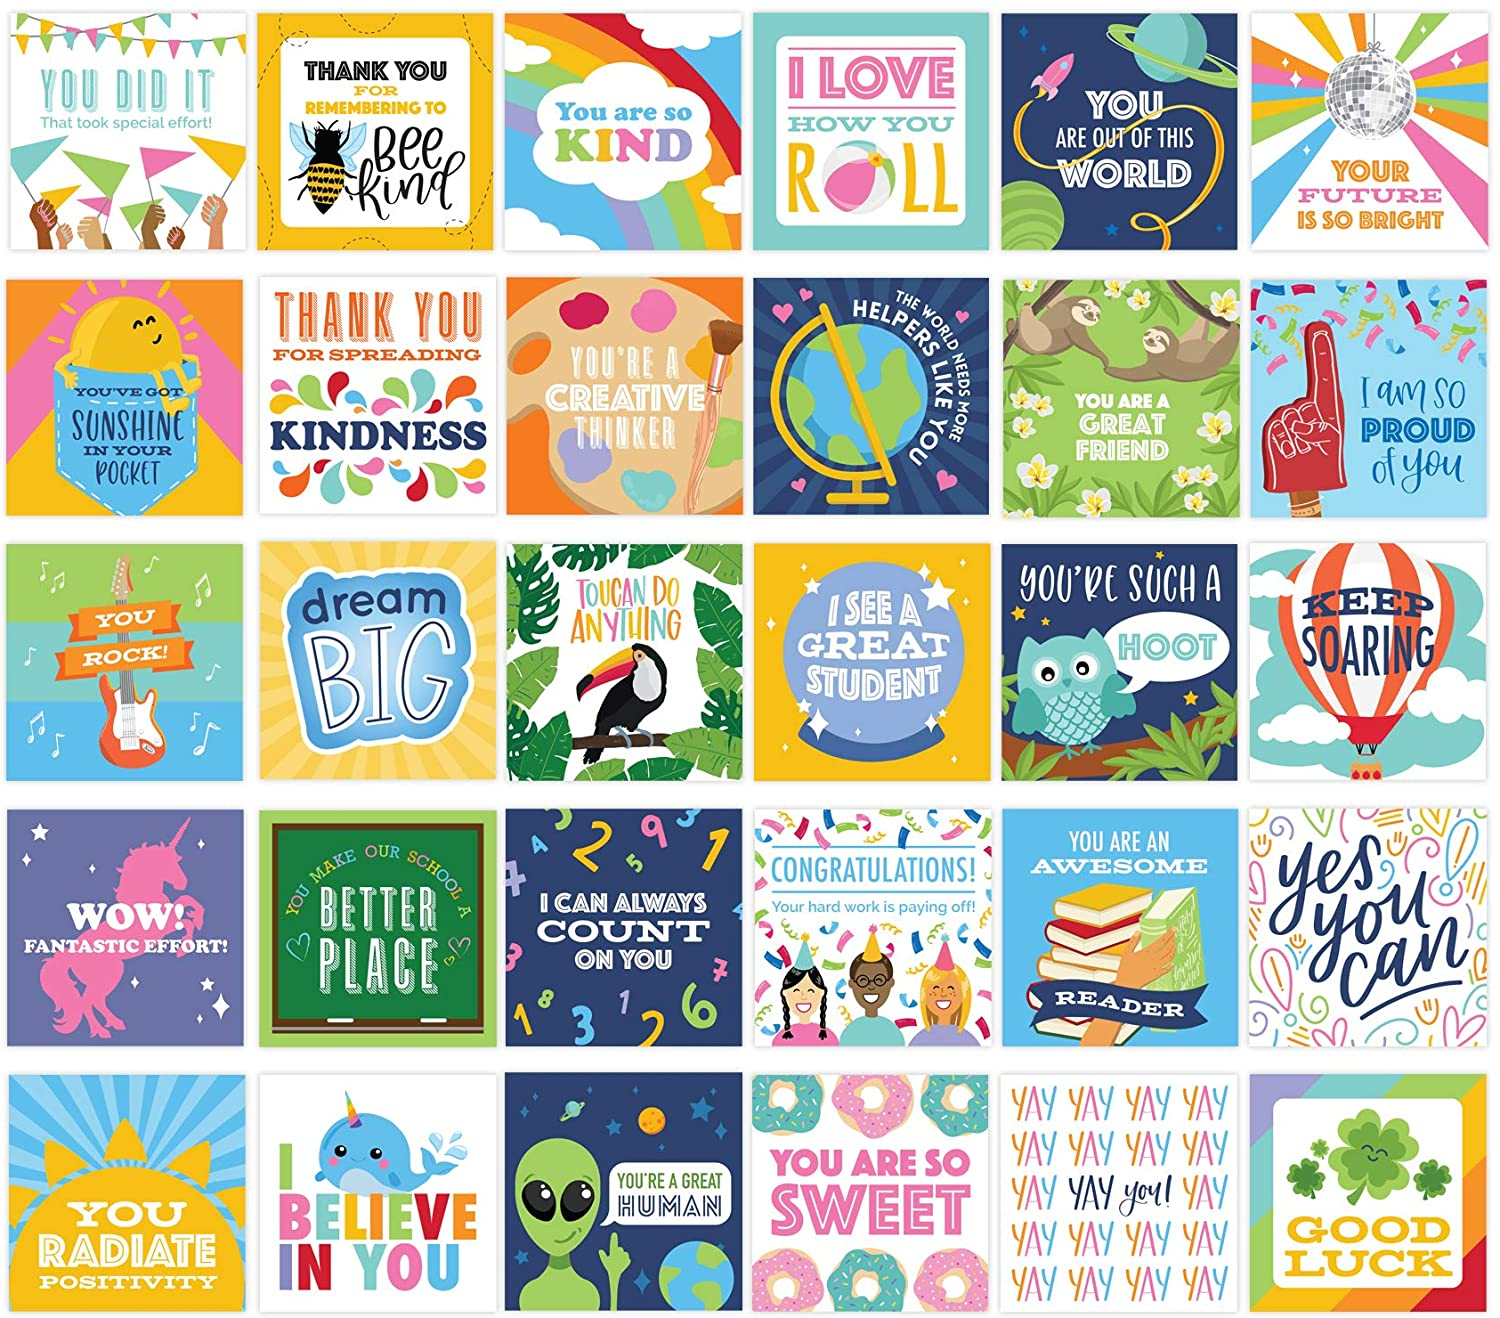 bloom daily planners Student Encouragement Card Deck - Cute Sentimental Quote Cards for Teachers to Give Kids - Set of Thirty 3